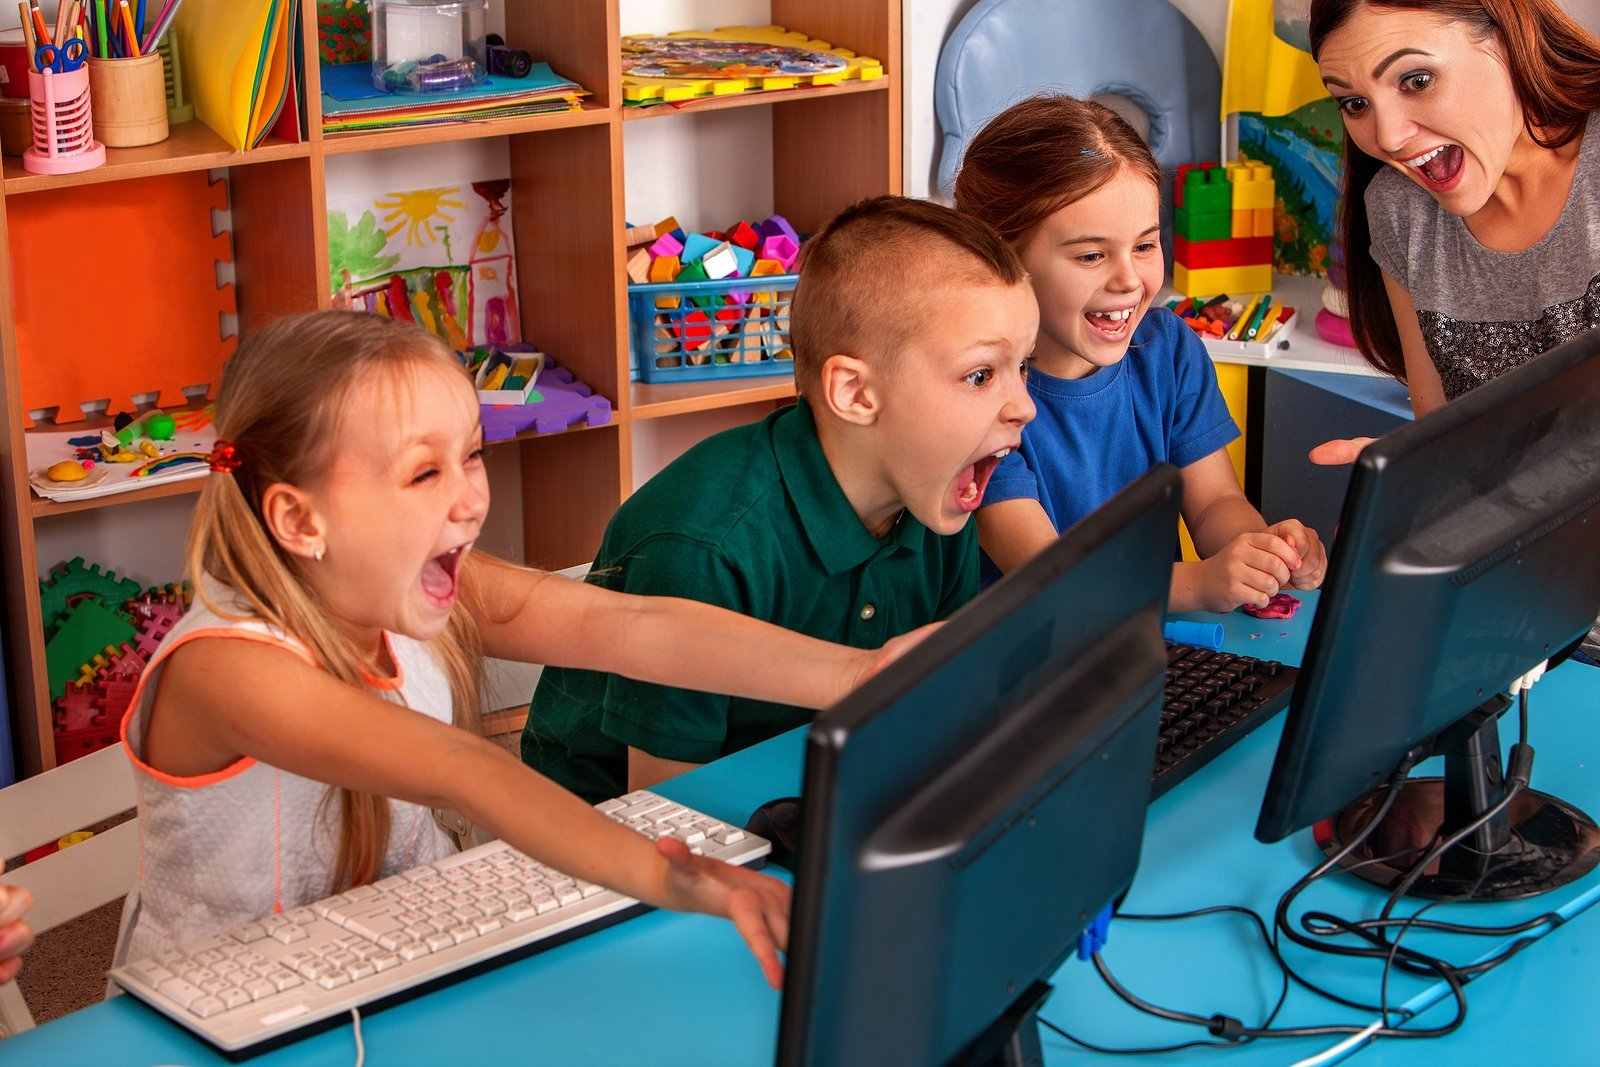 Children computer class us for education and video game